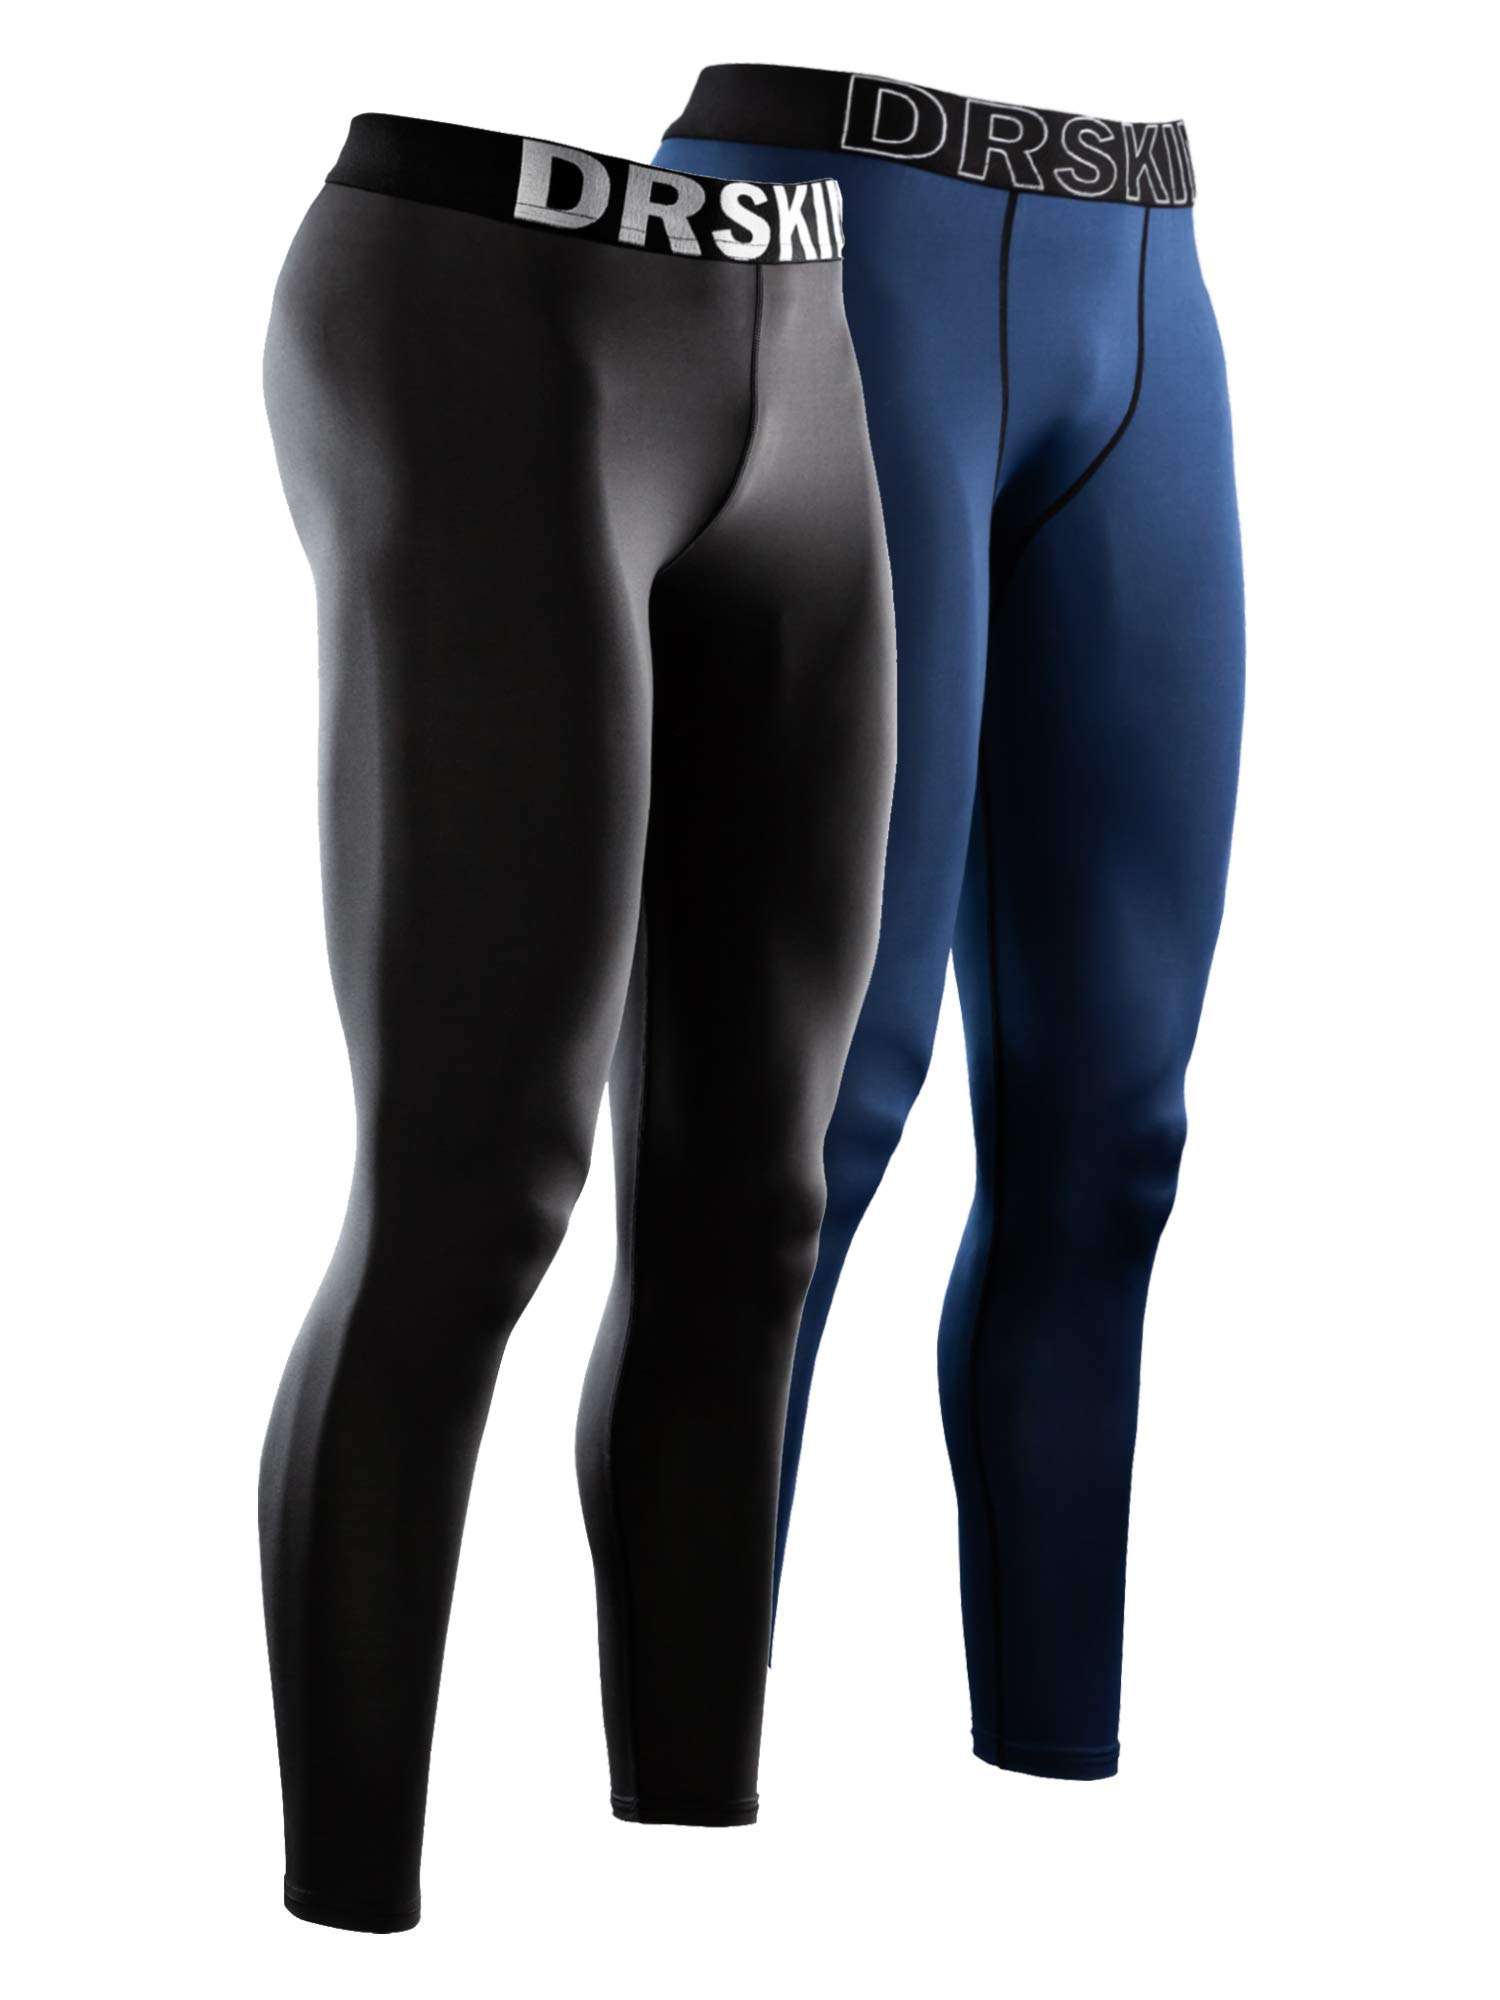 DRSKIN Men's 2 Pack Compression Dry Cool Sports